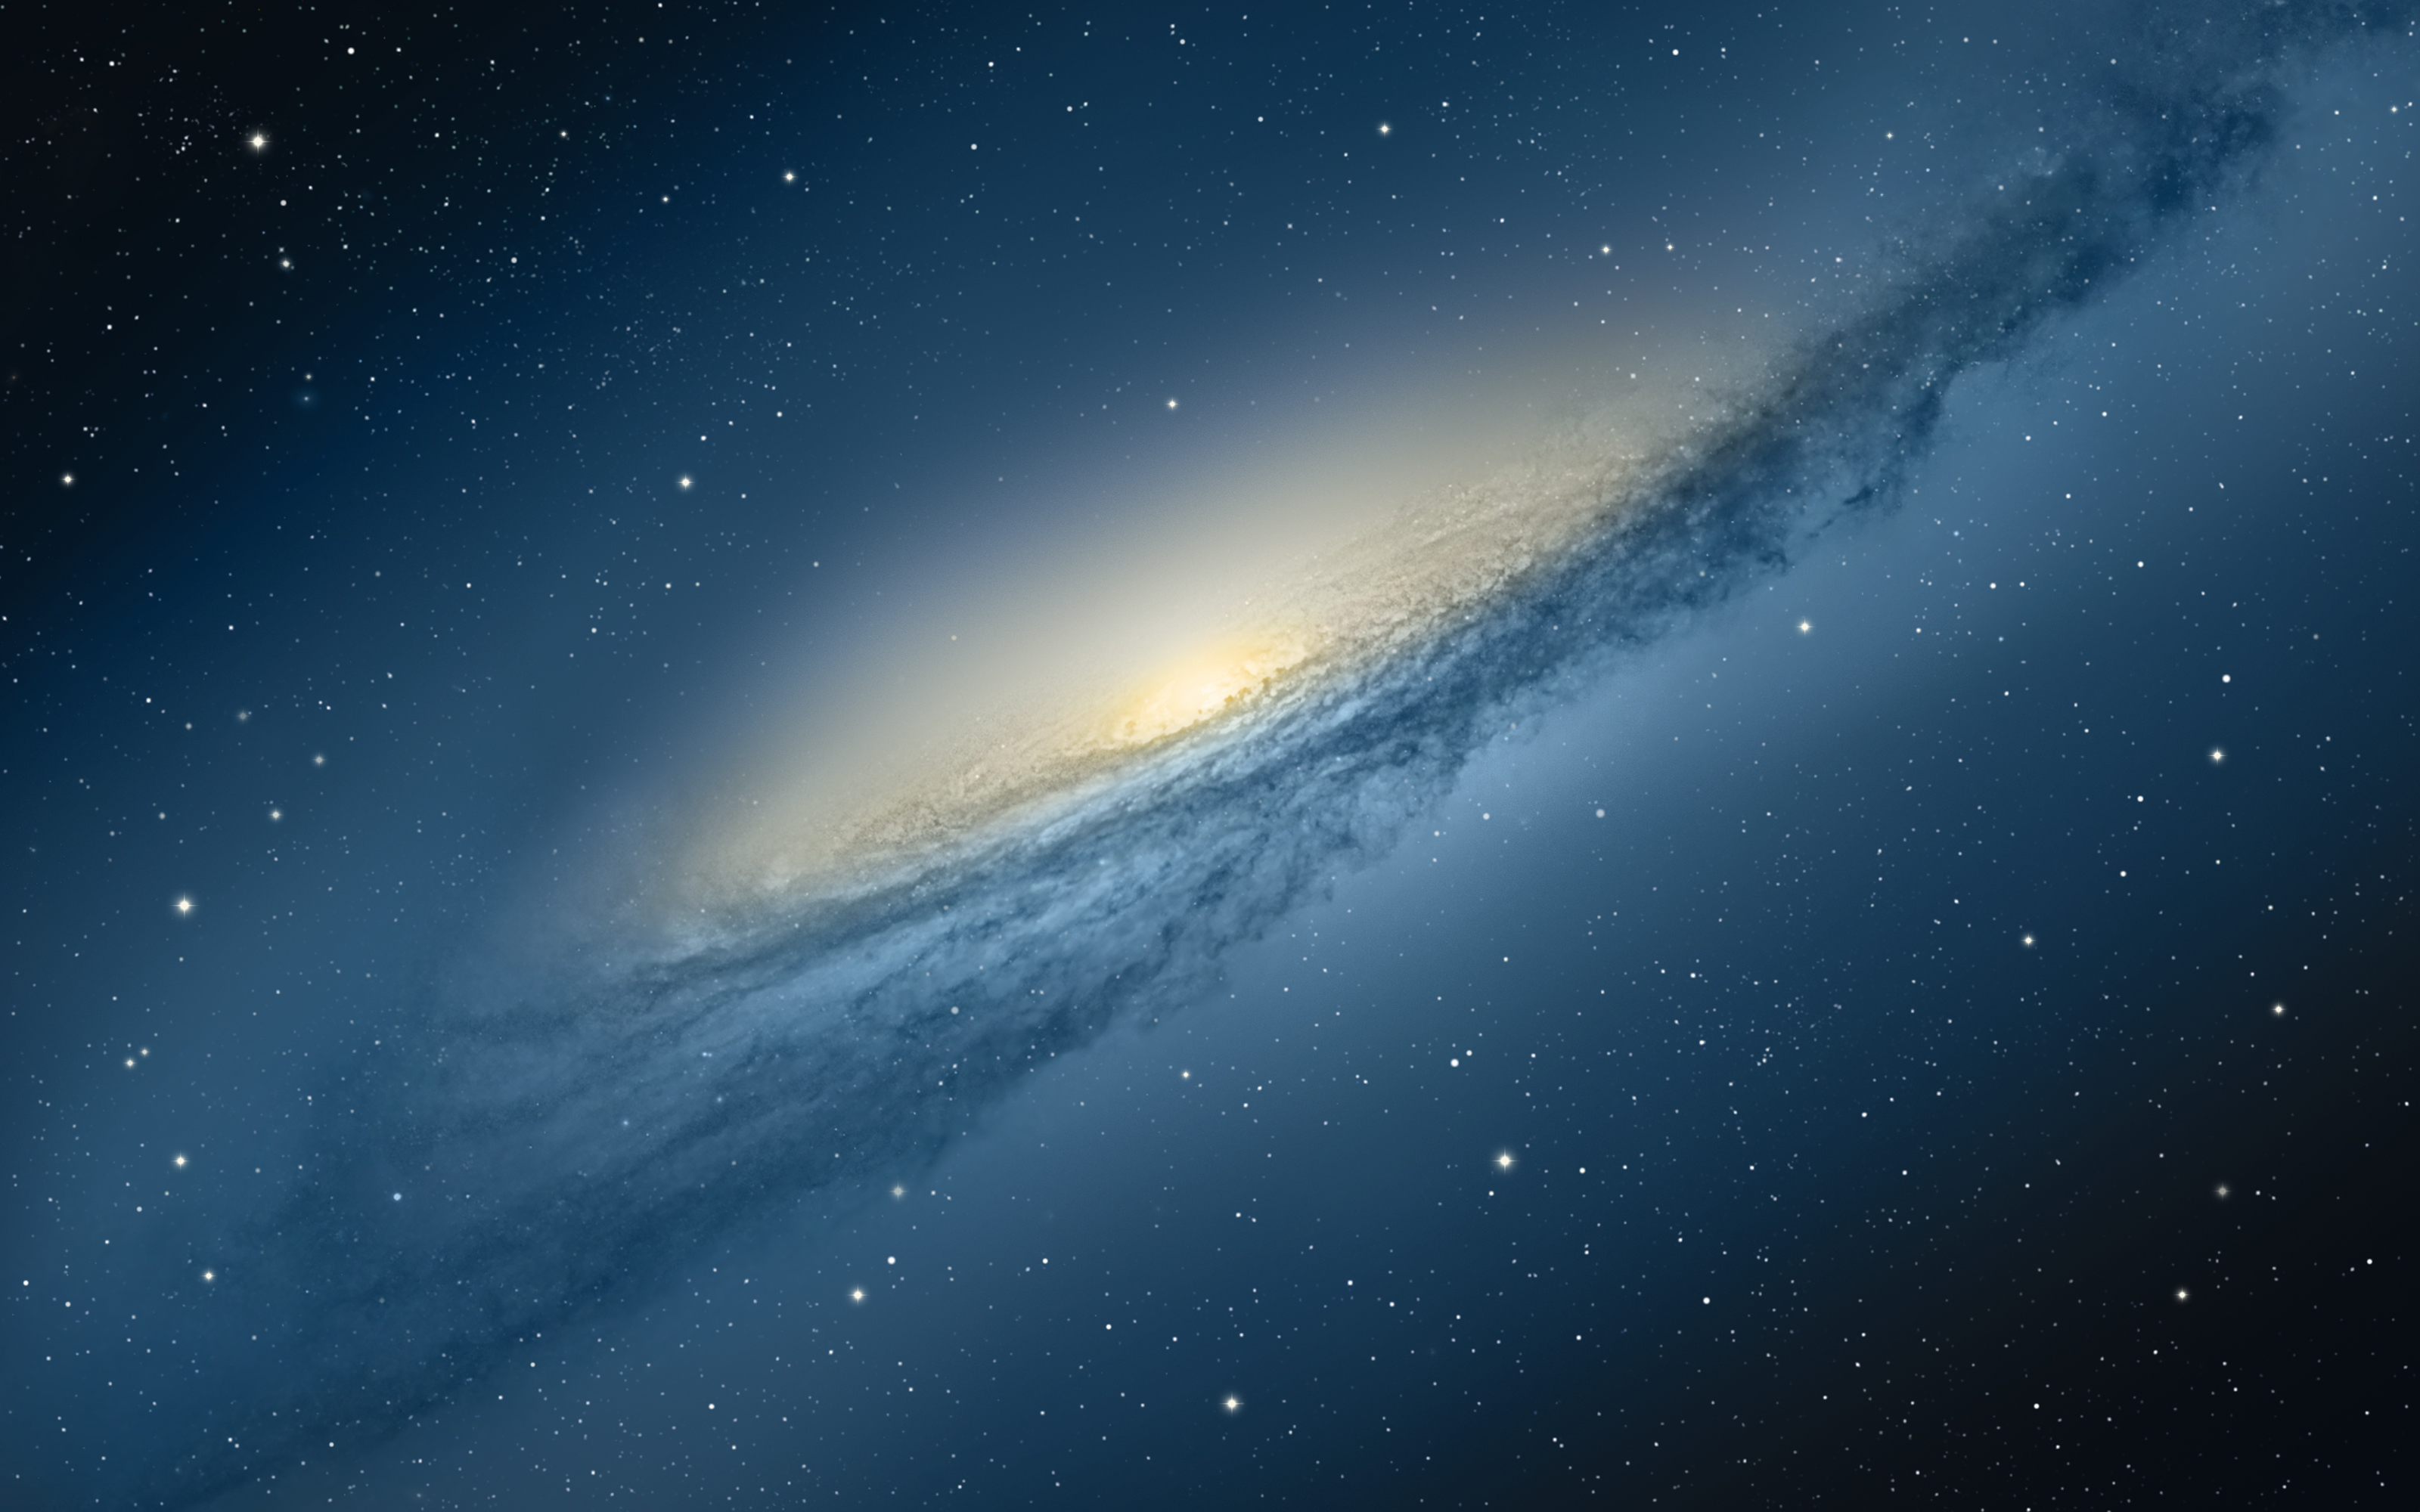 erases another few galaxies for Mountain Lion wallpaper The Verge 3200x2000